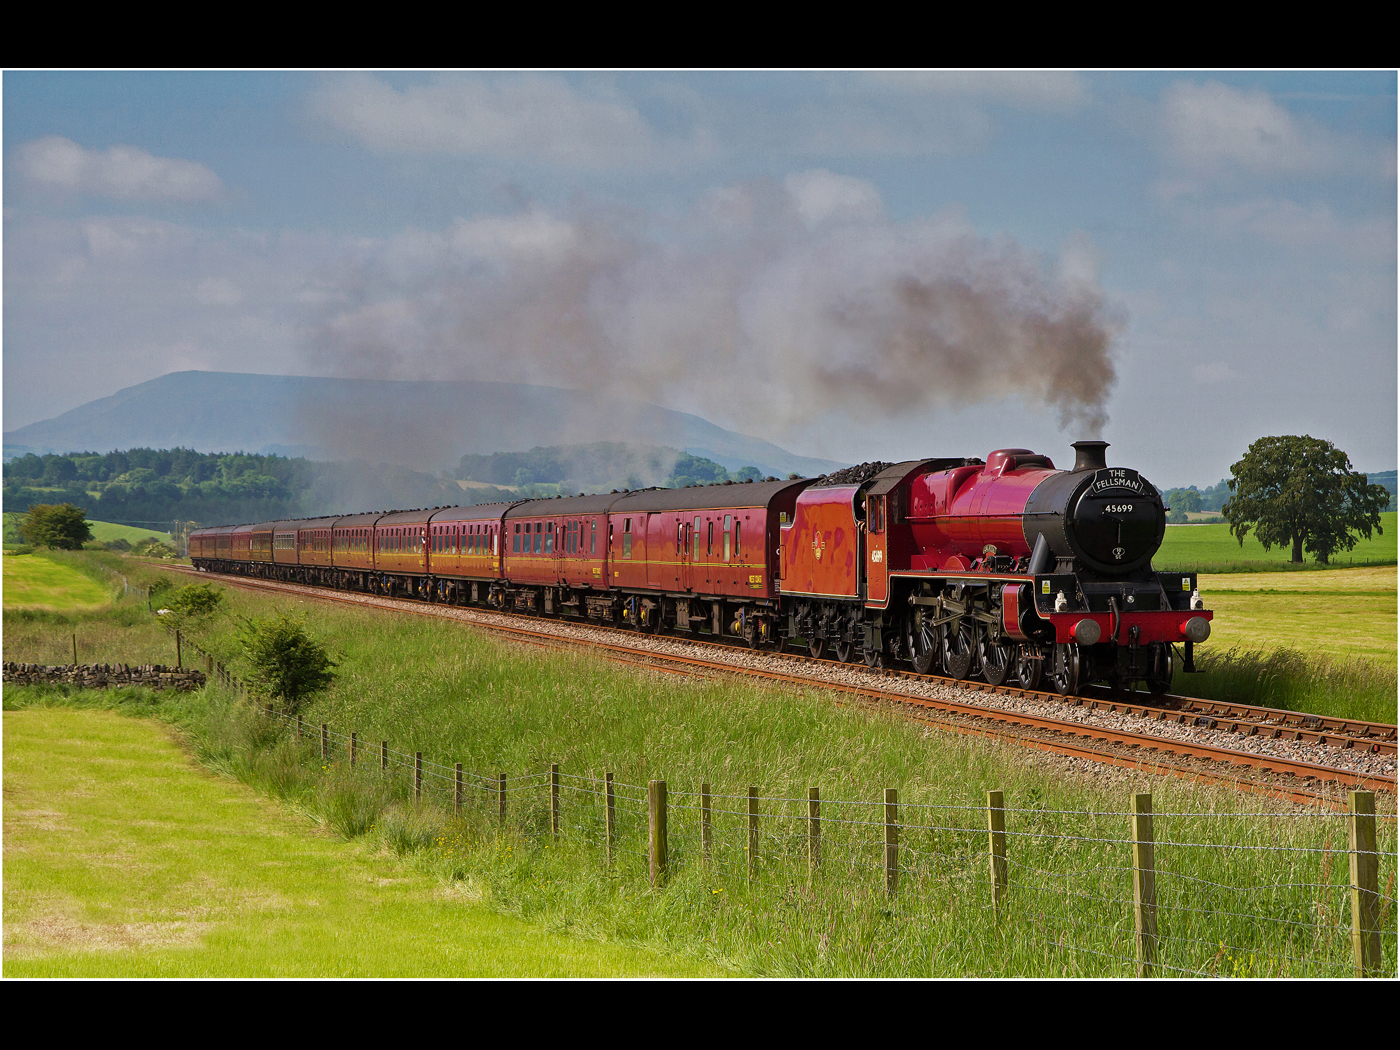 Fellsman Passing Pendle Hill